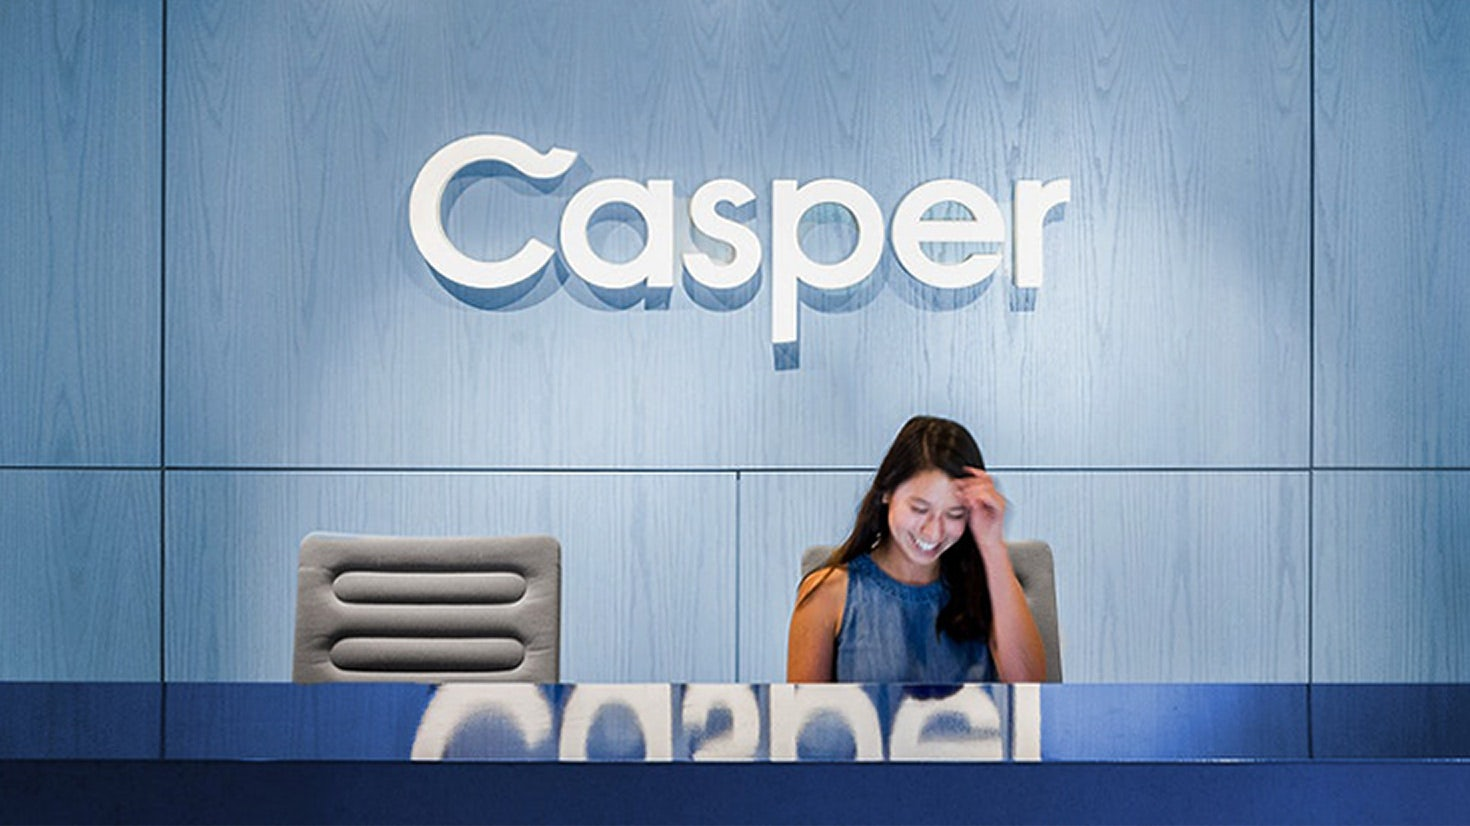 Casper Customer Support